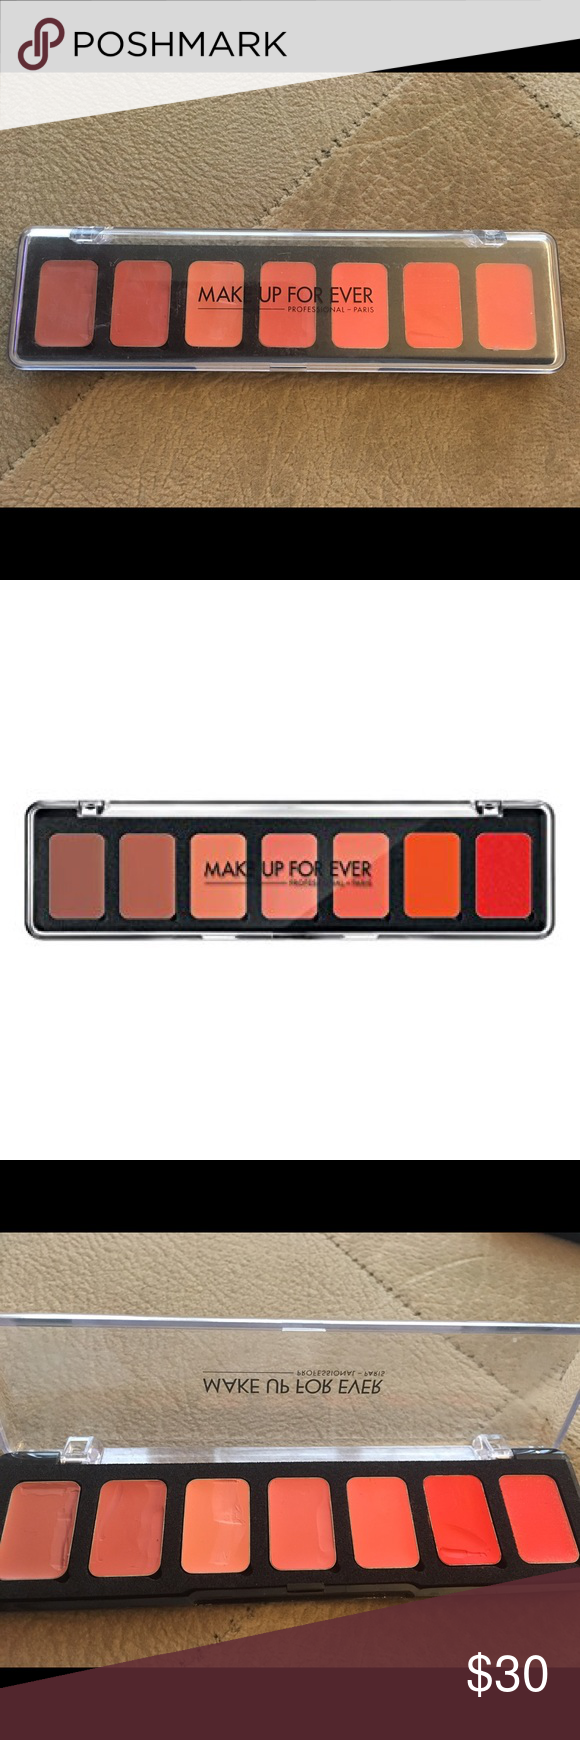 Make Up For Ever Artist Rouge 7 Lip Palette Make Up For Ever Artist Rouge 7